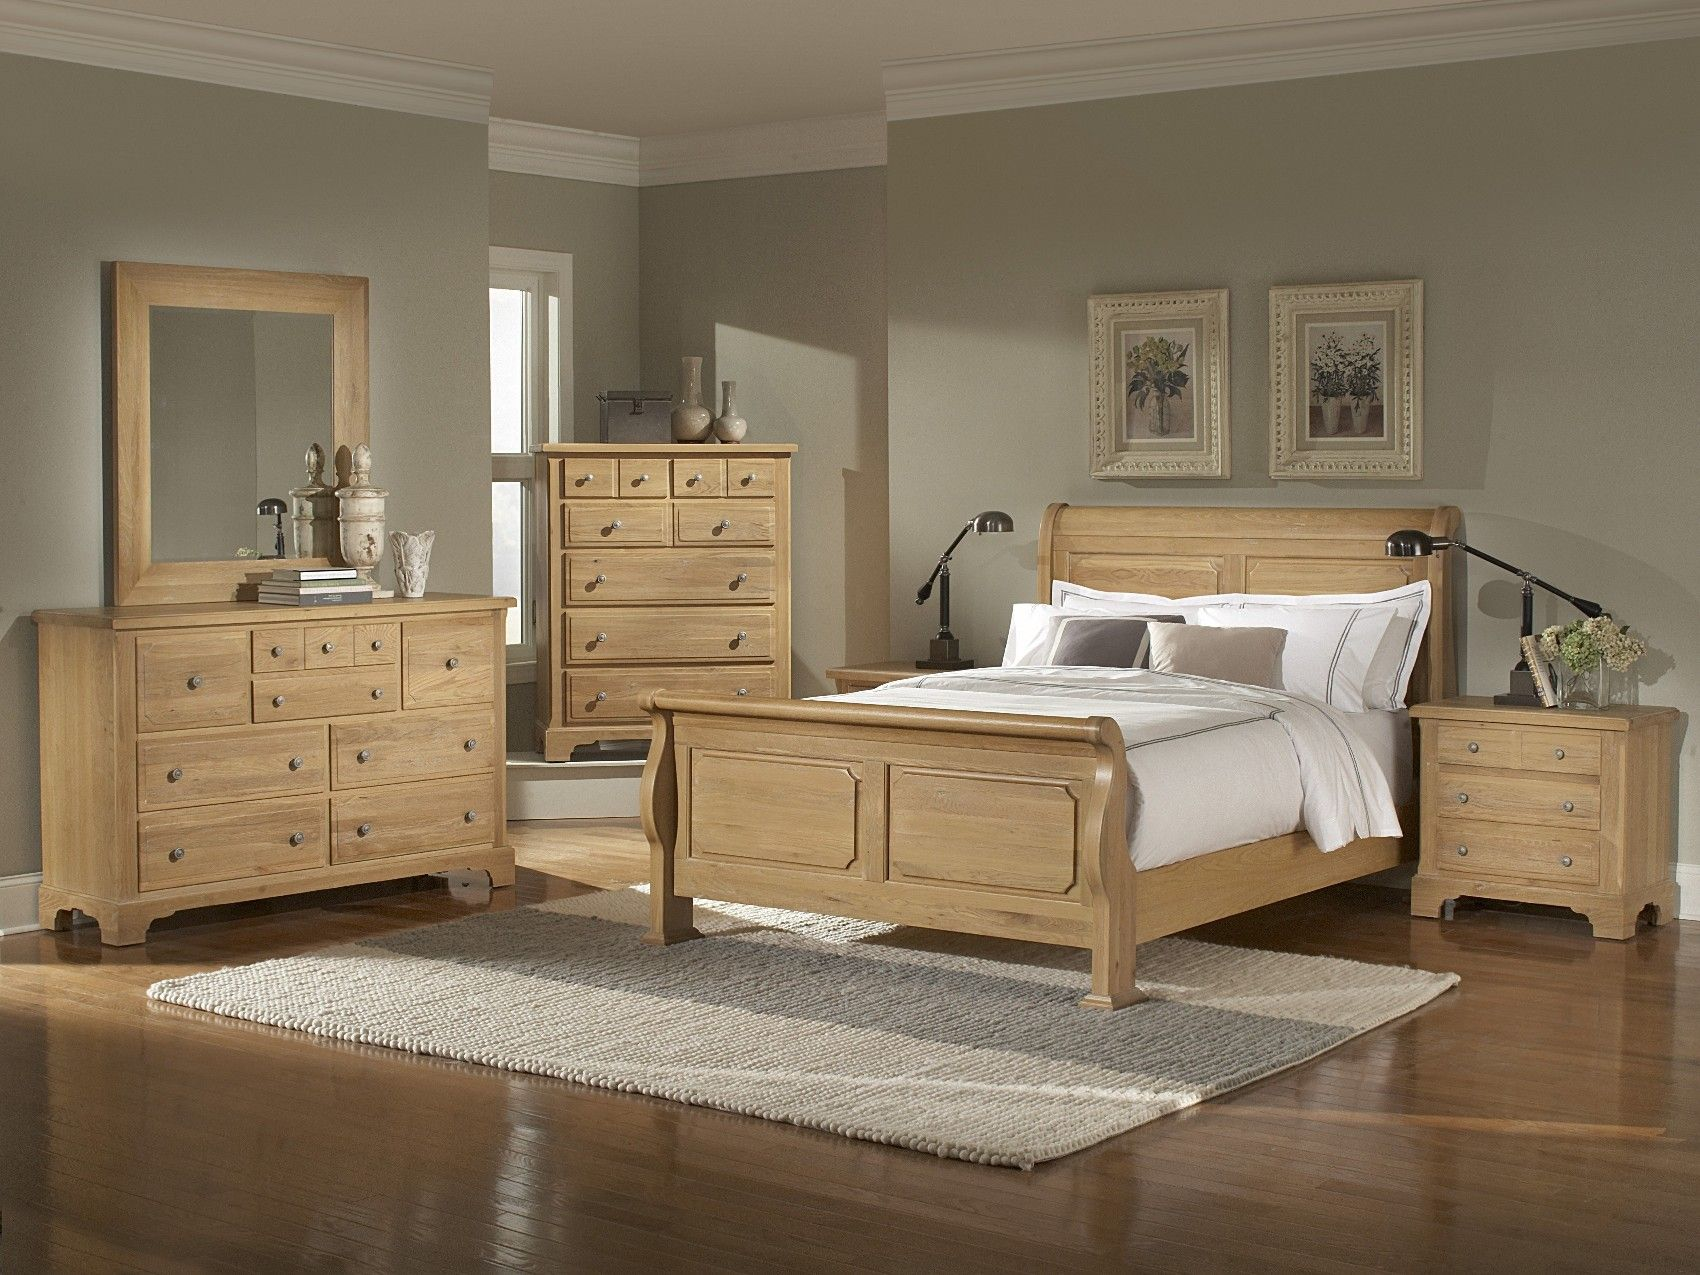 oak bedroom furniture oak bedroom and bedroom furniture on pinterest brown solid wood furniture